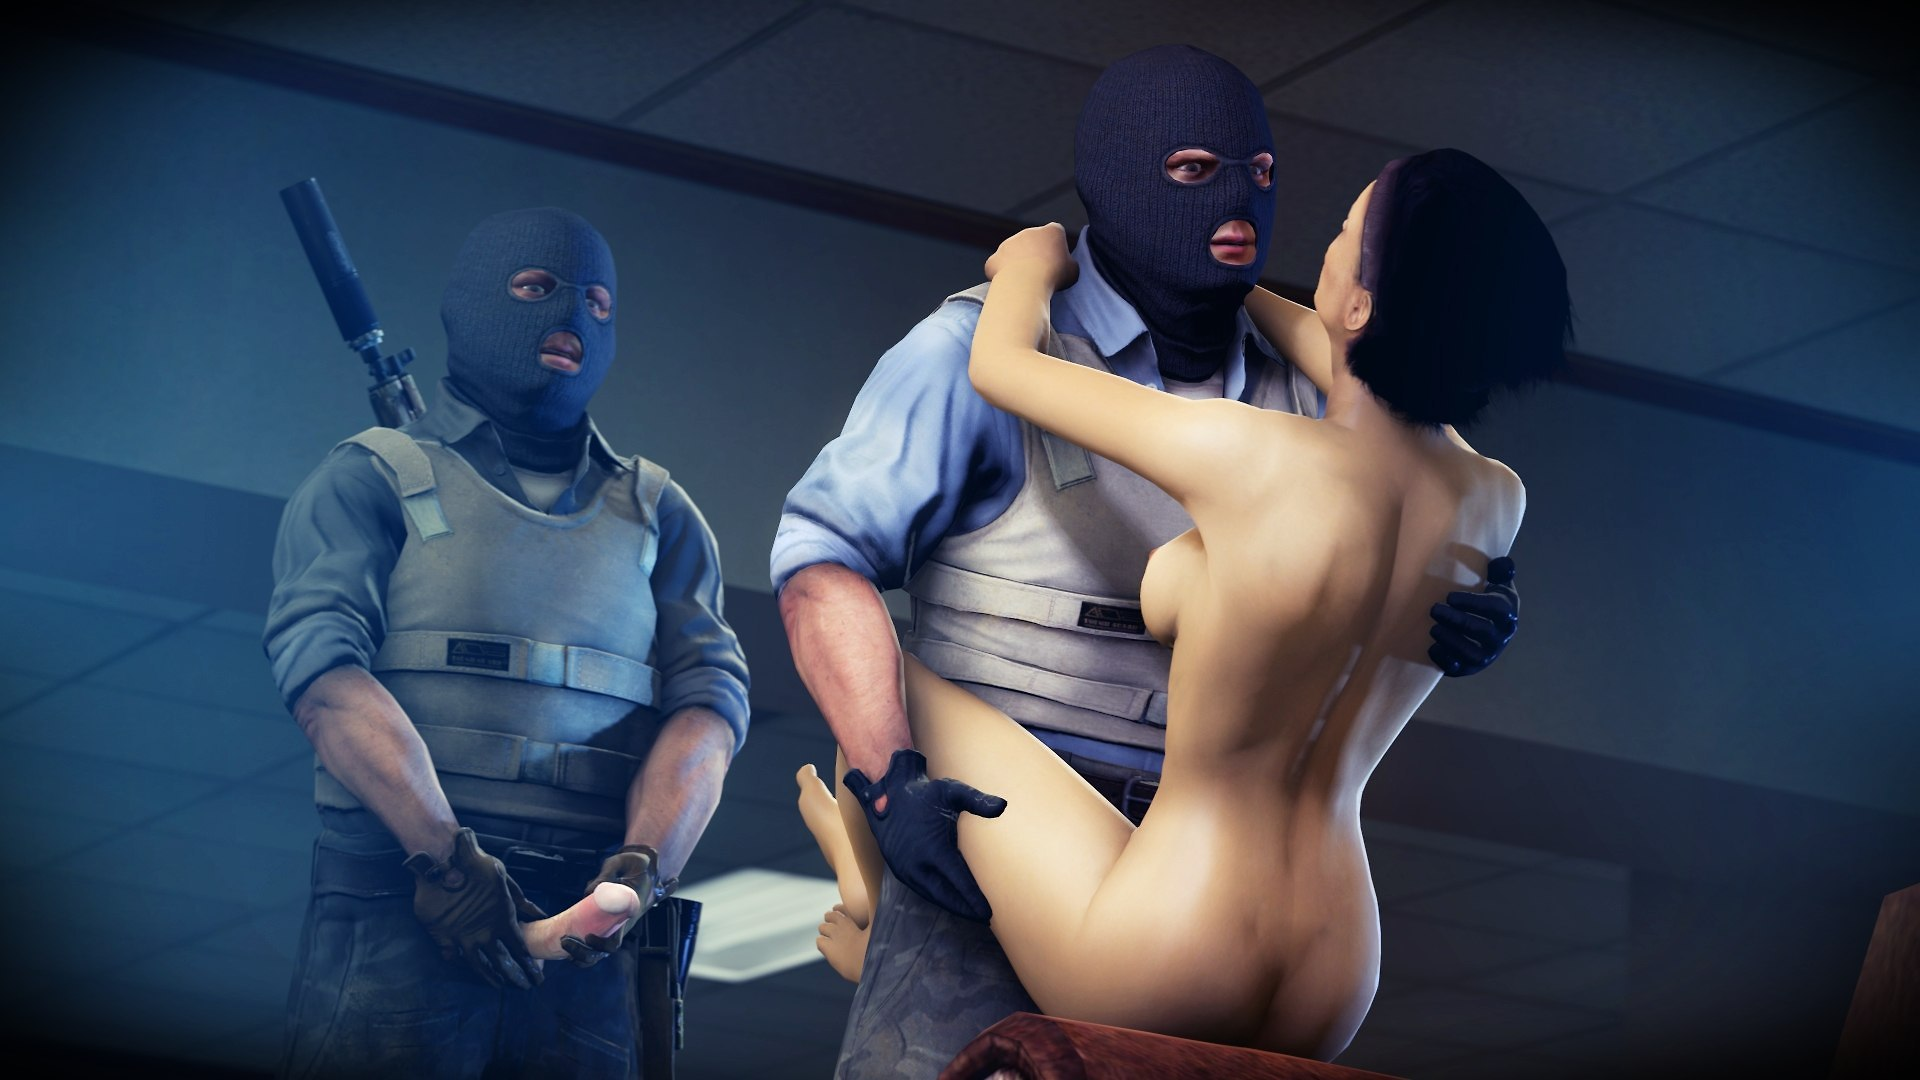 Counter strike videos porno hentai nackt film